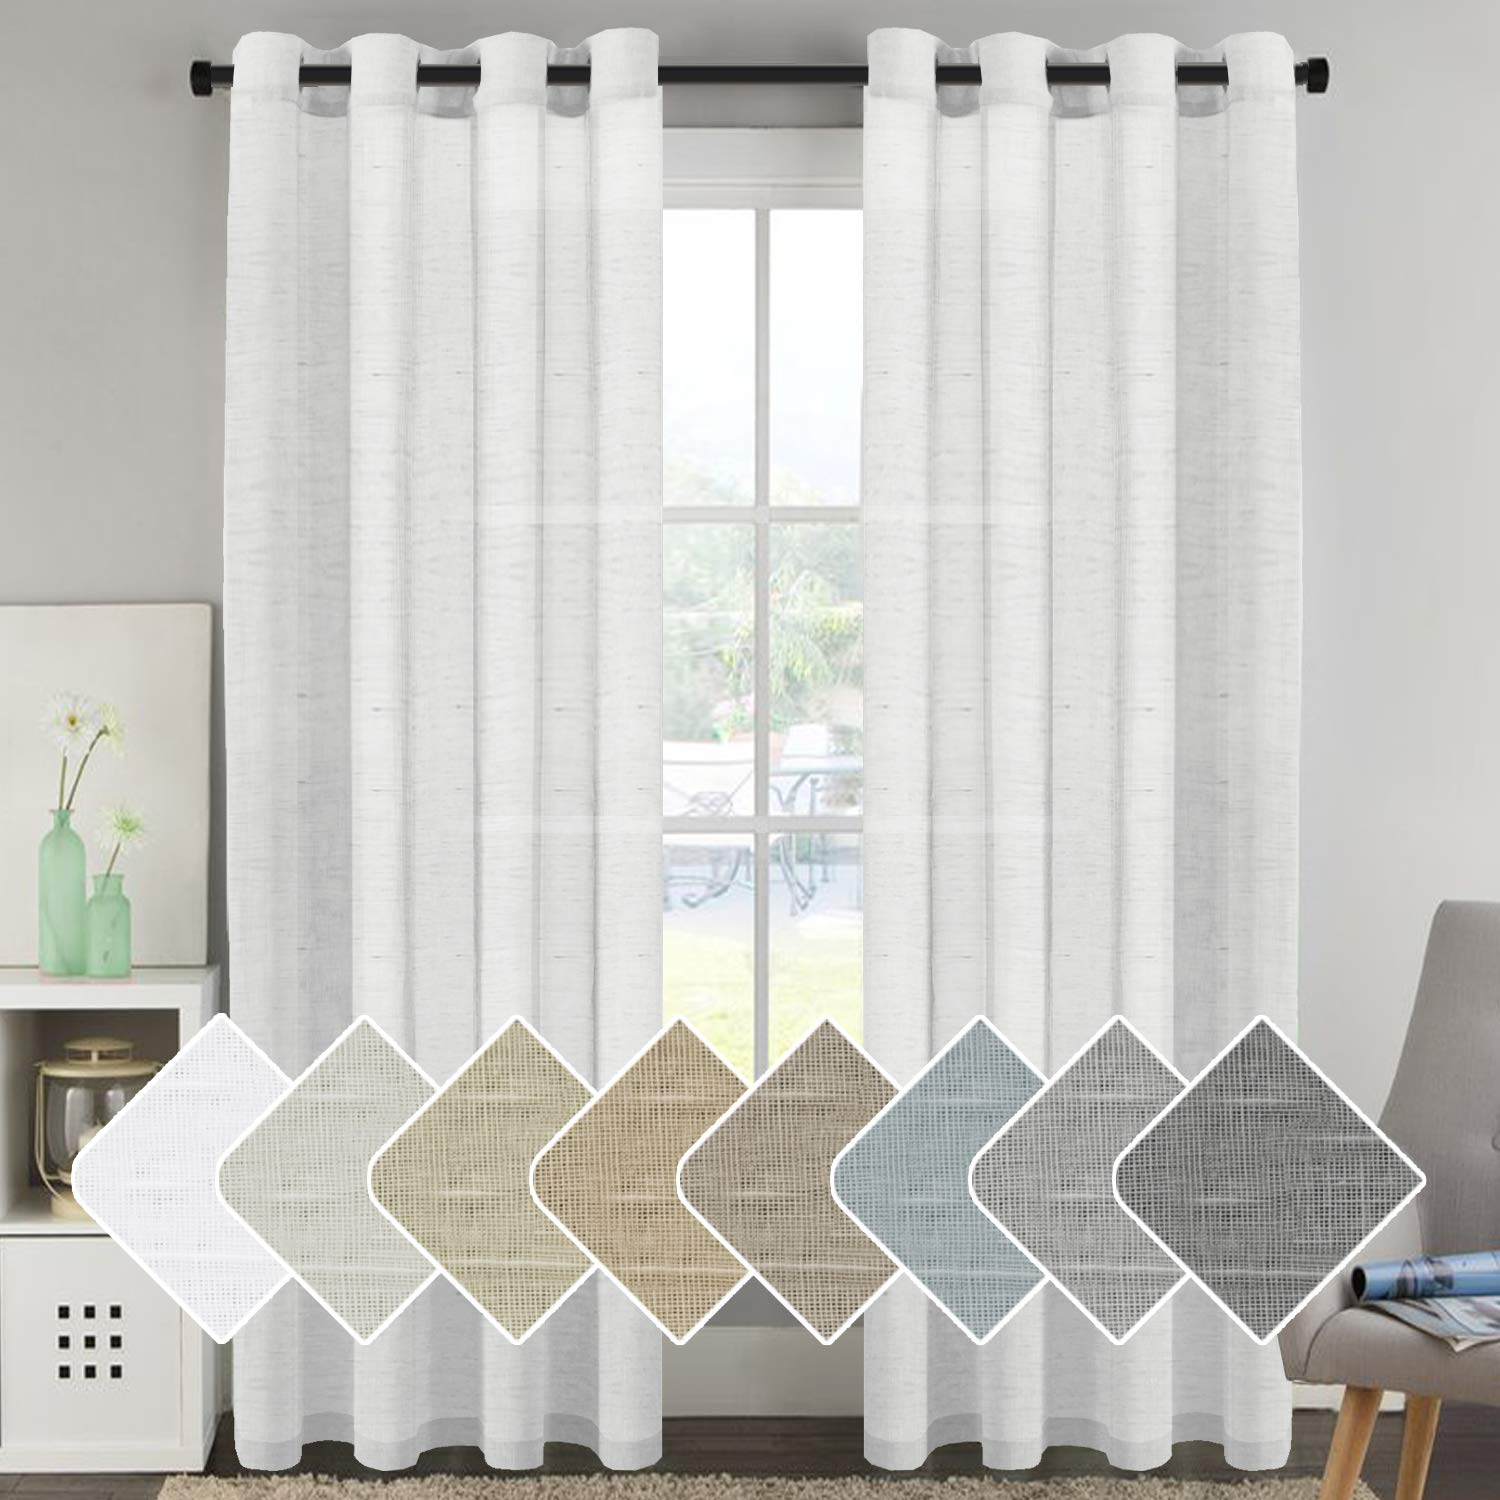 Details About Home Living Room 52 X 96 Premium Luxury Window Sheer Curtain Set, White Intended For Elegant Comfort Window Sheer Curtain Panel Pairs (View 12 of 20)